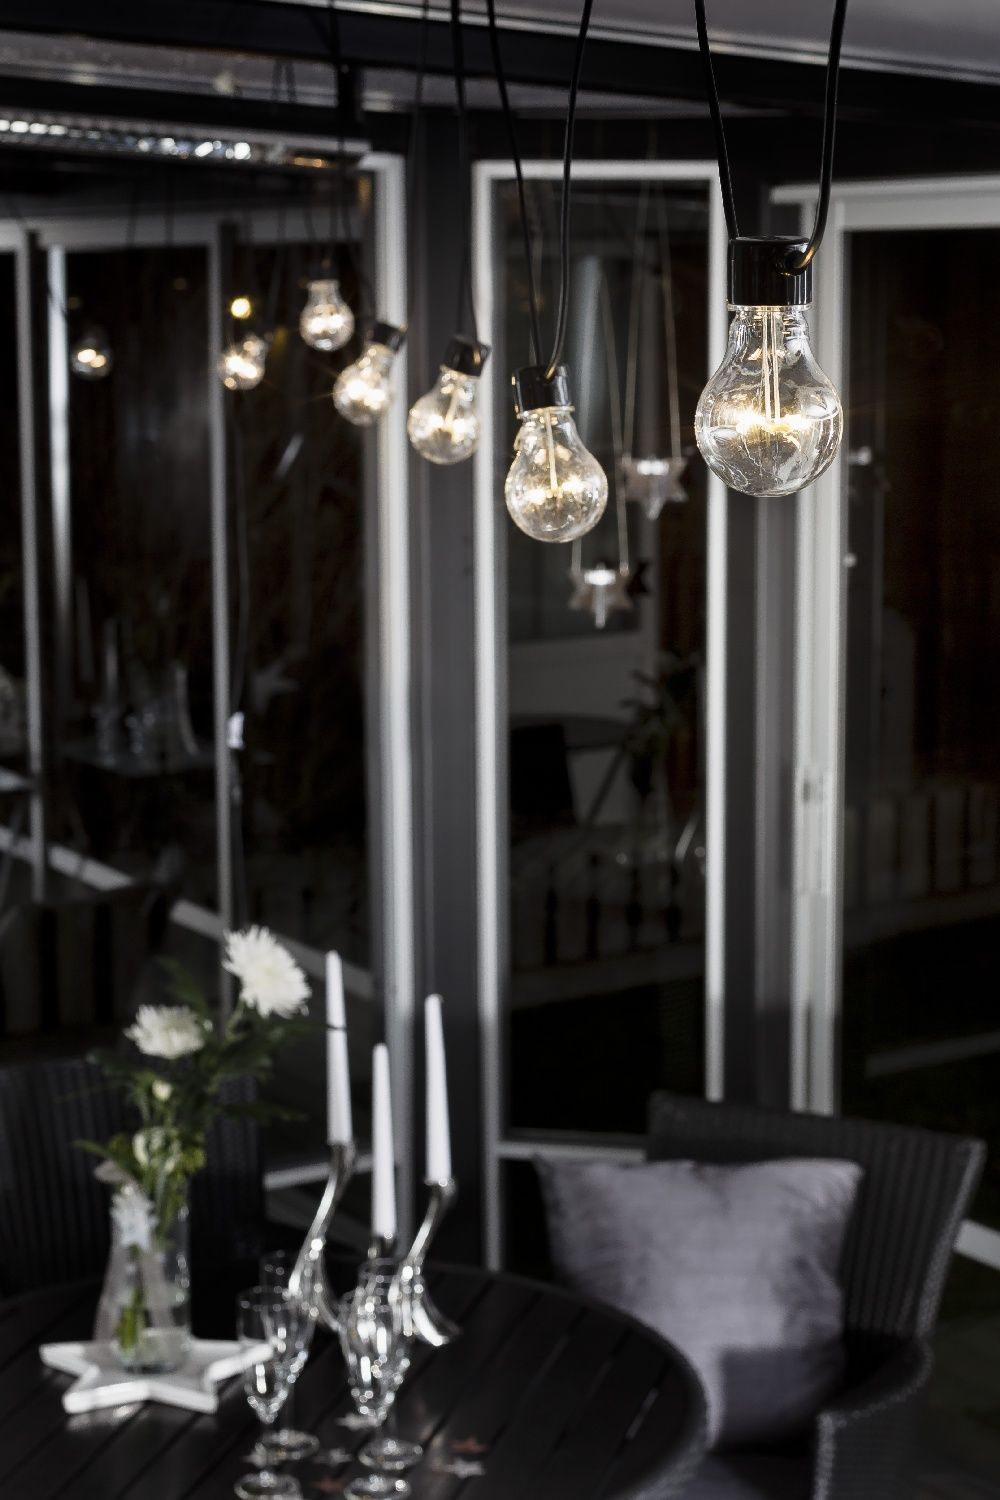 Luxury Party LED verlichting heldere LED lampen warmwit